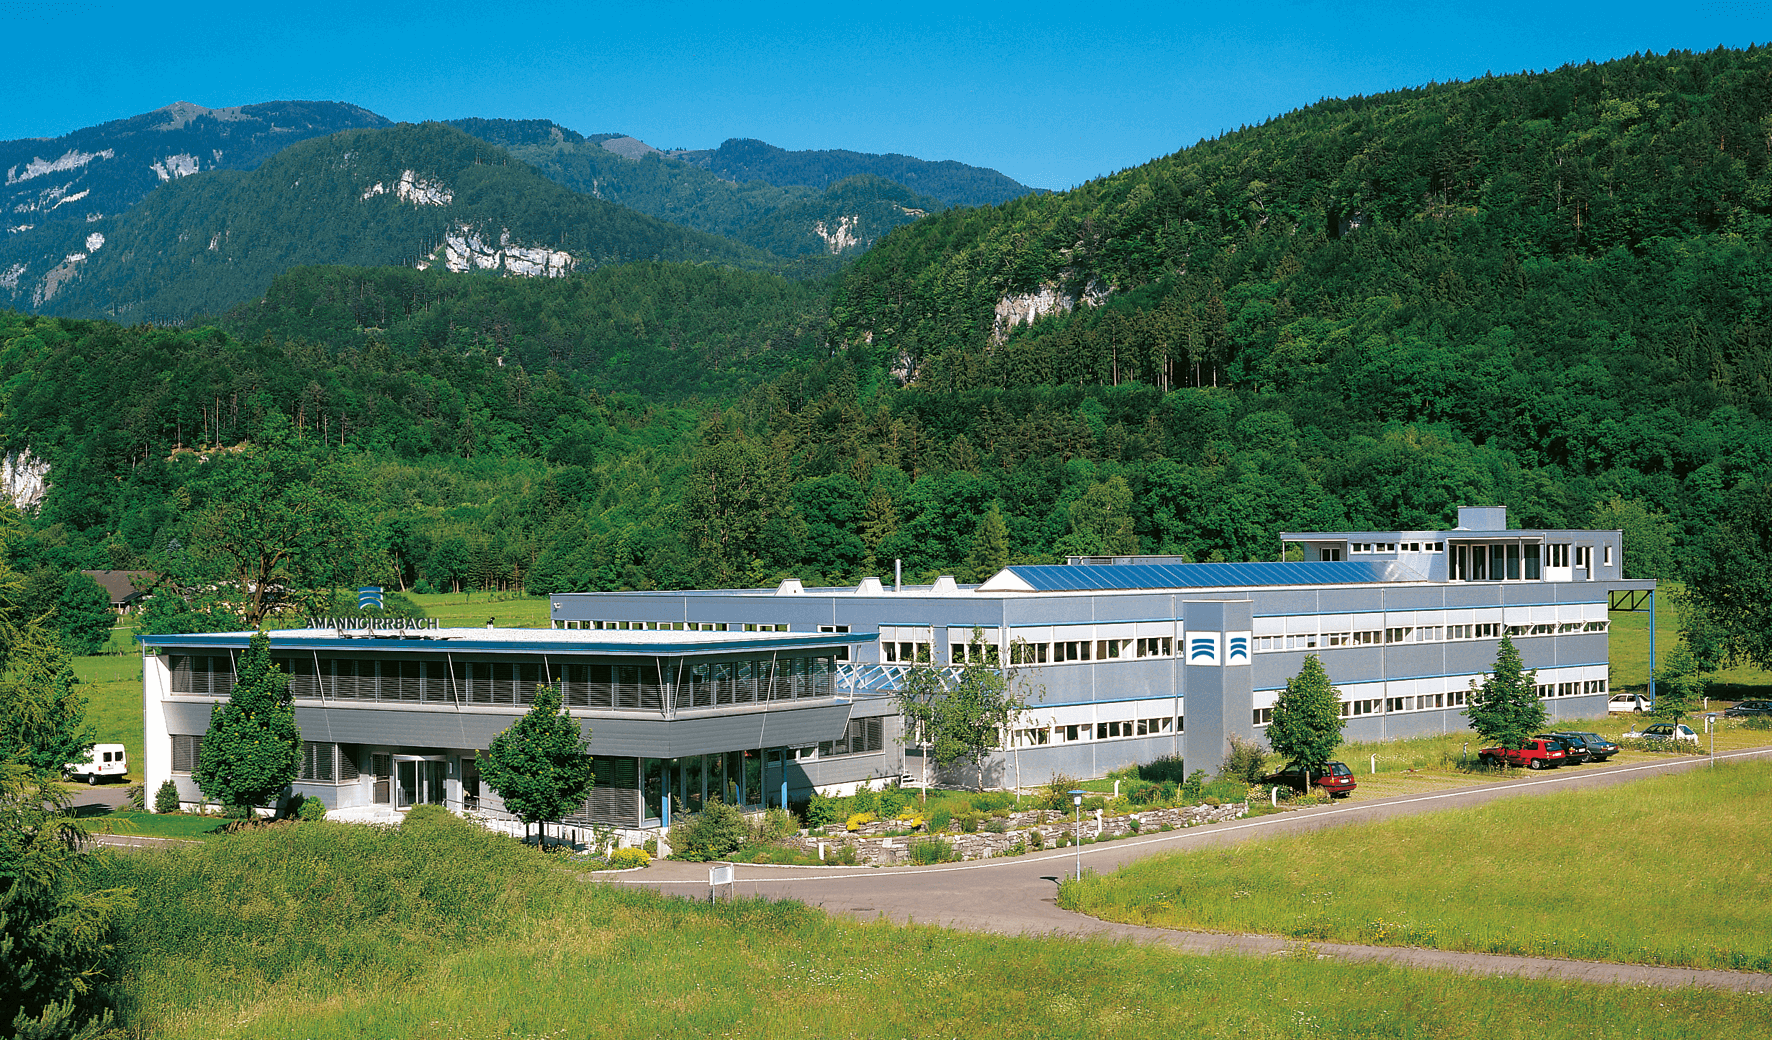 Picture of the headquarters of Amann Girrbach